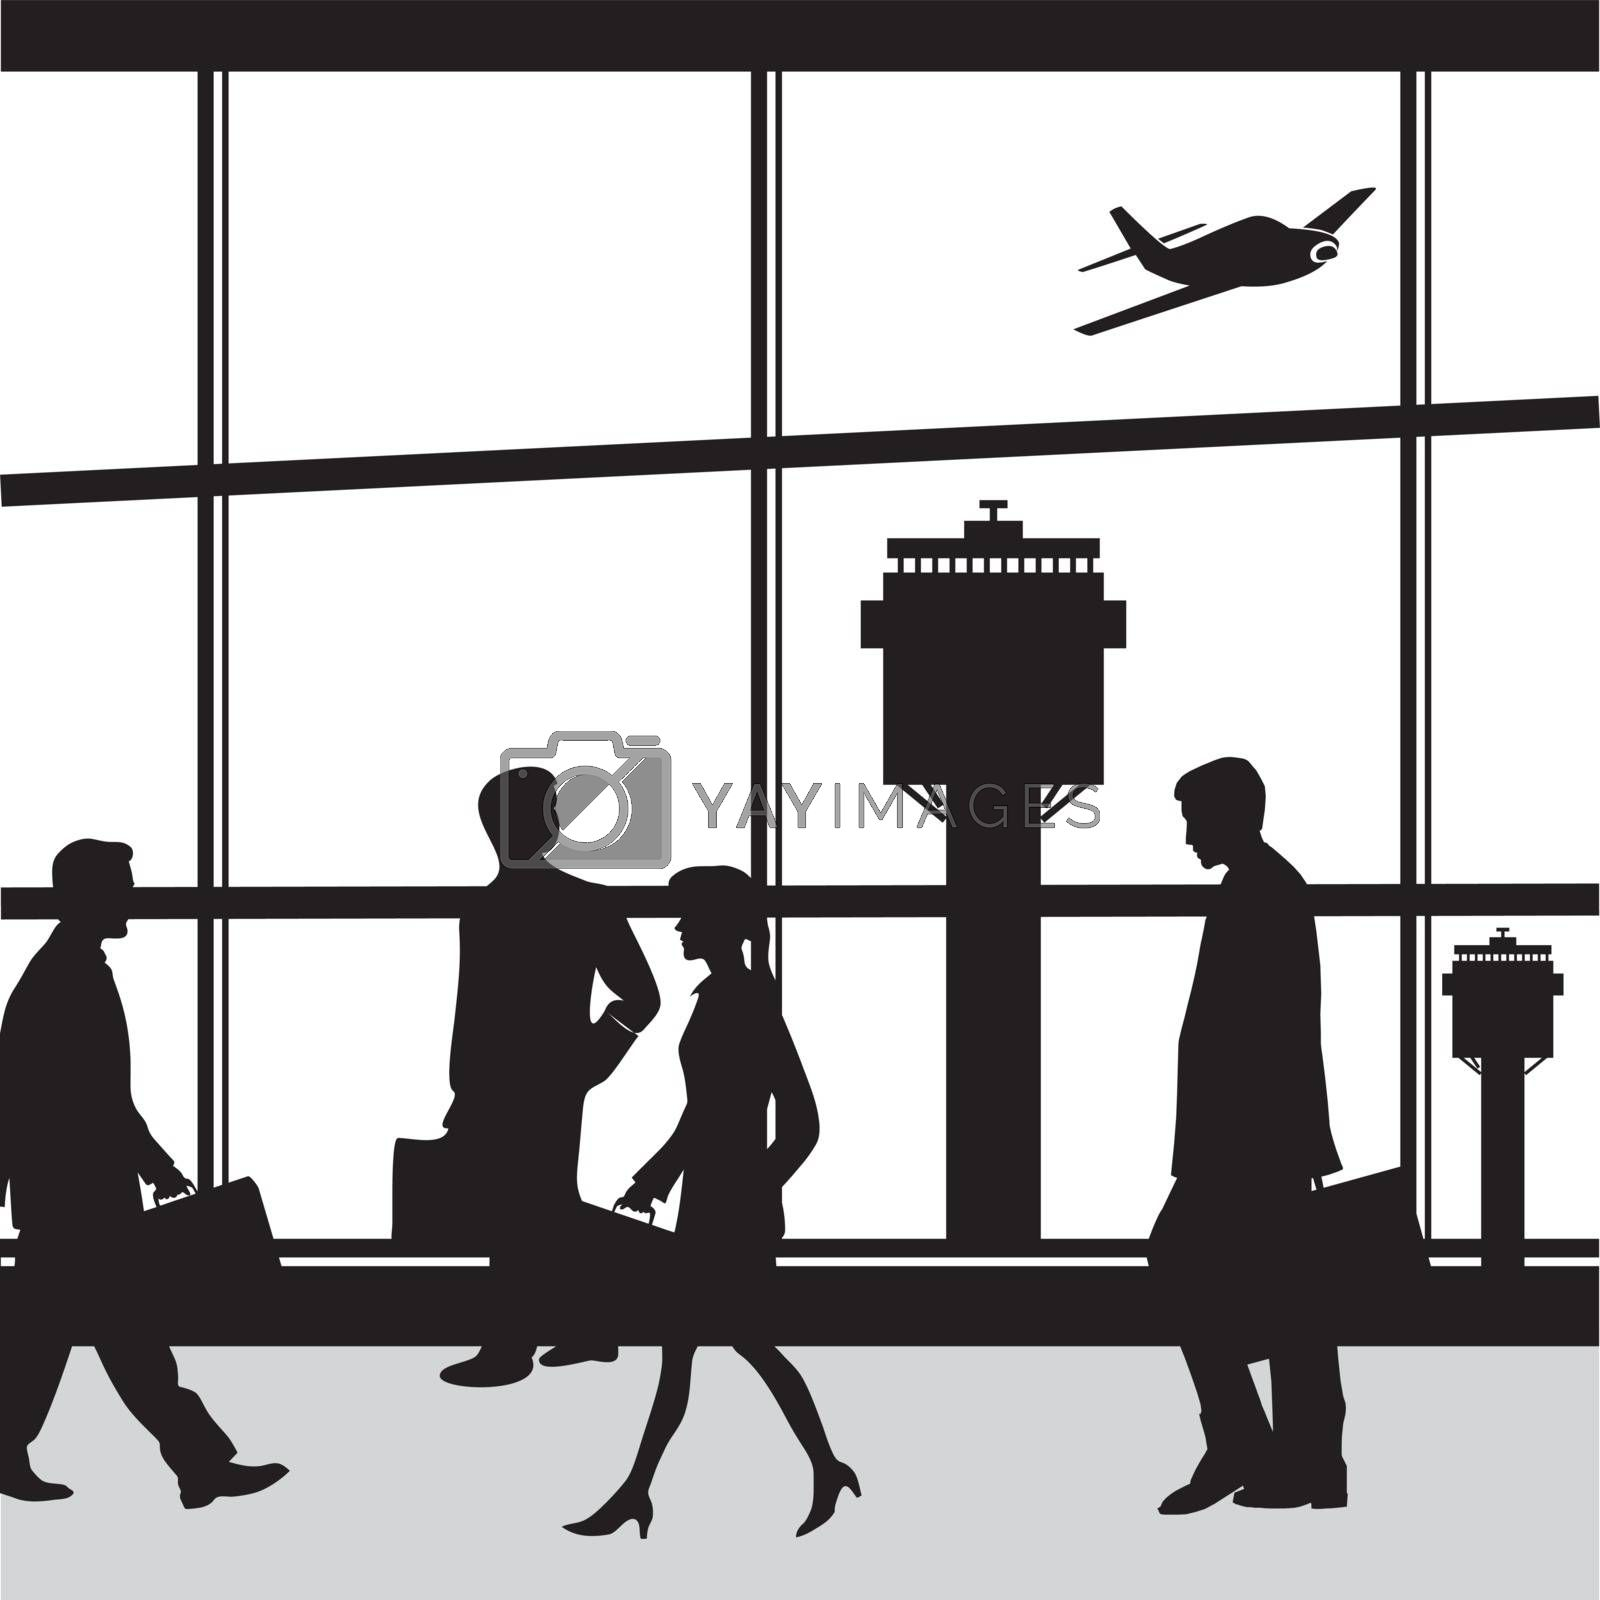 Airport terminal lounge with airplane and people silhouettes Vector illustration.